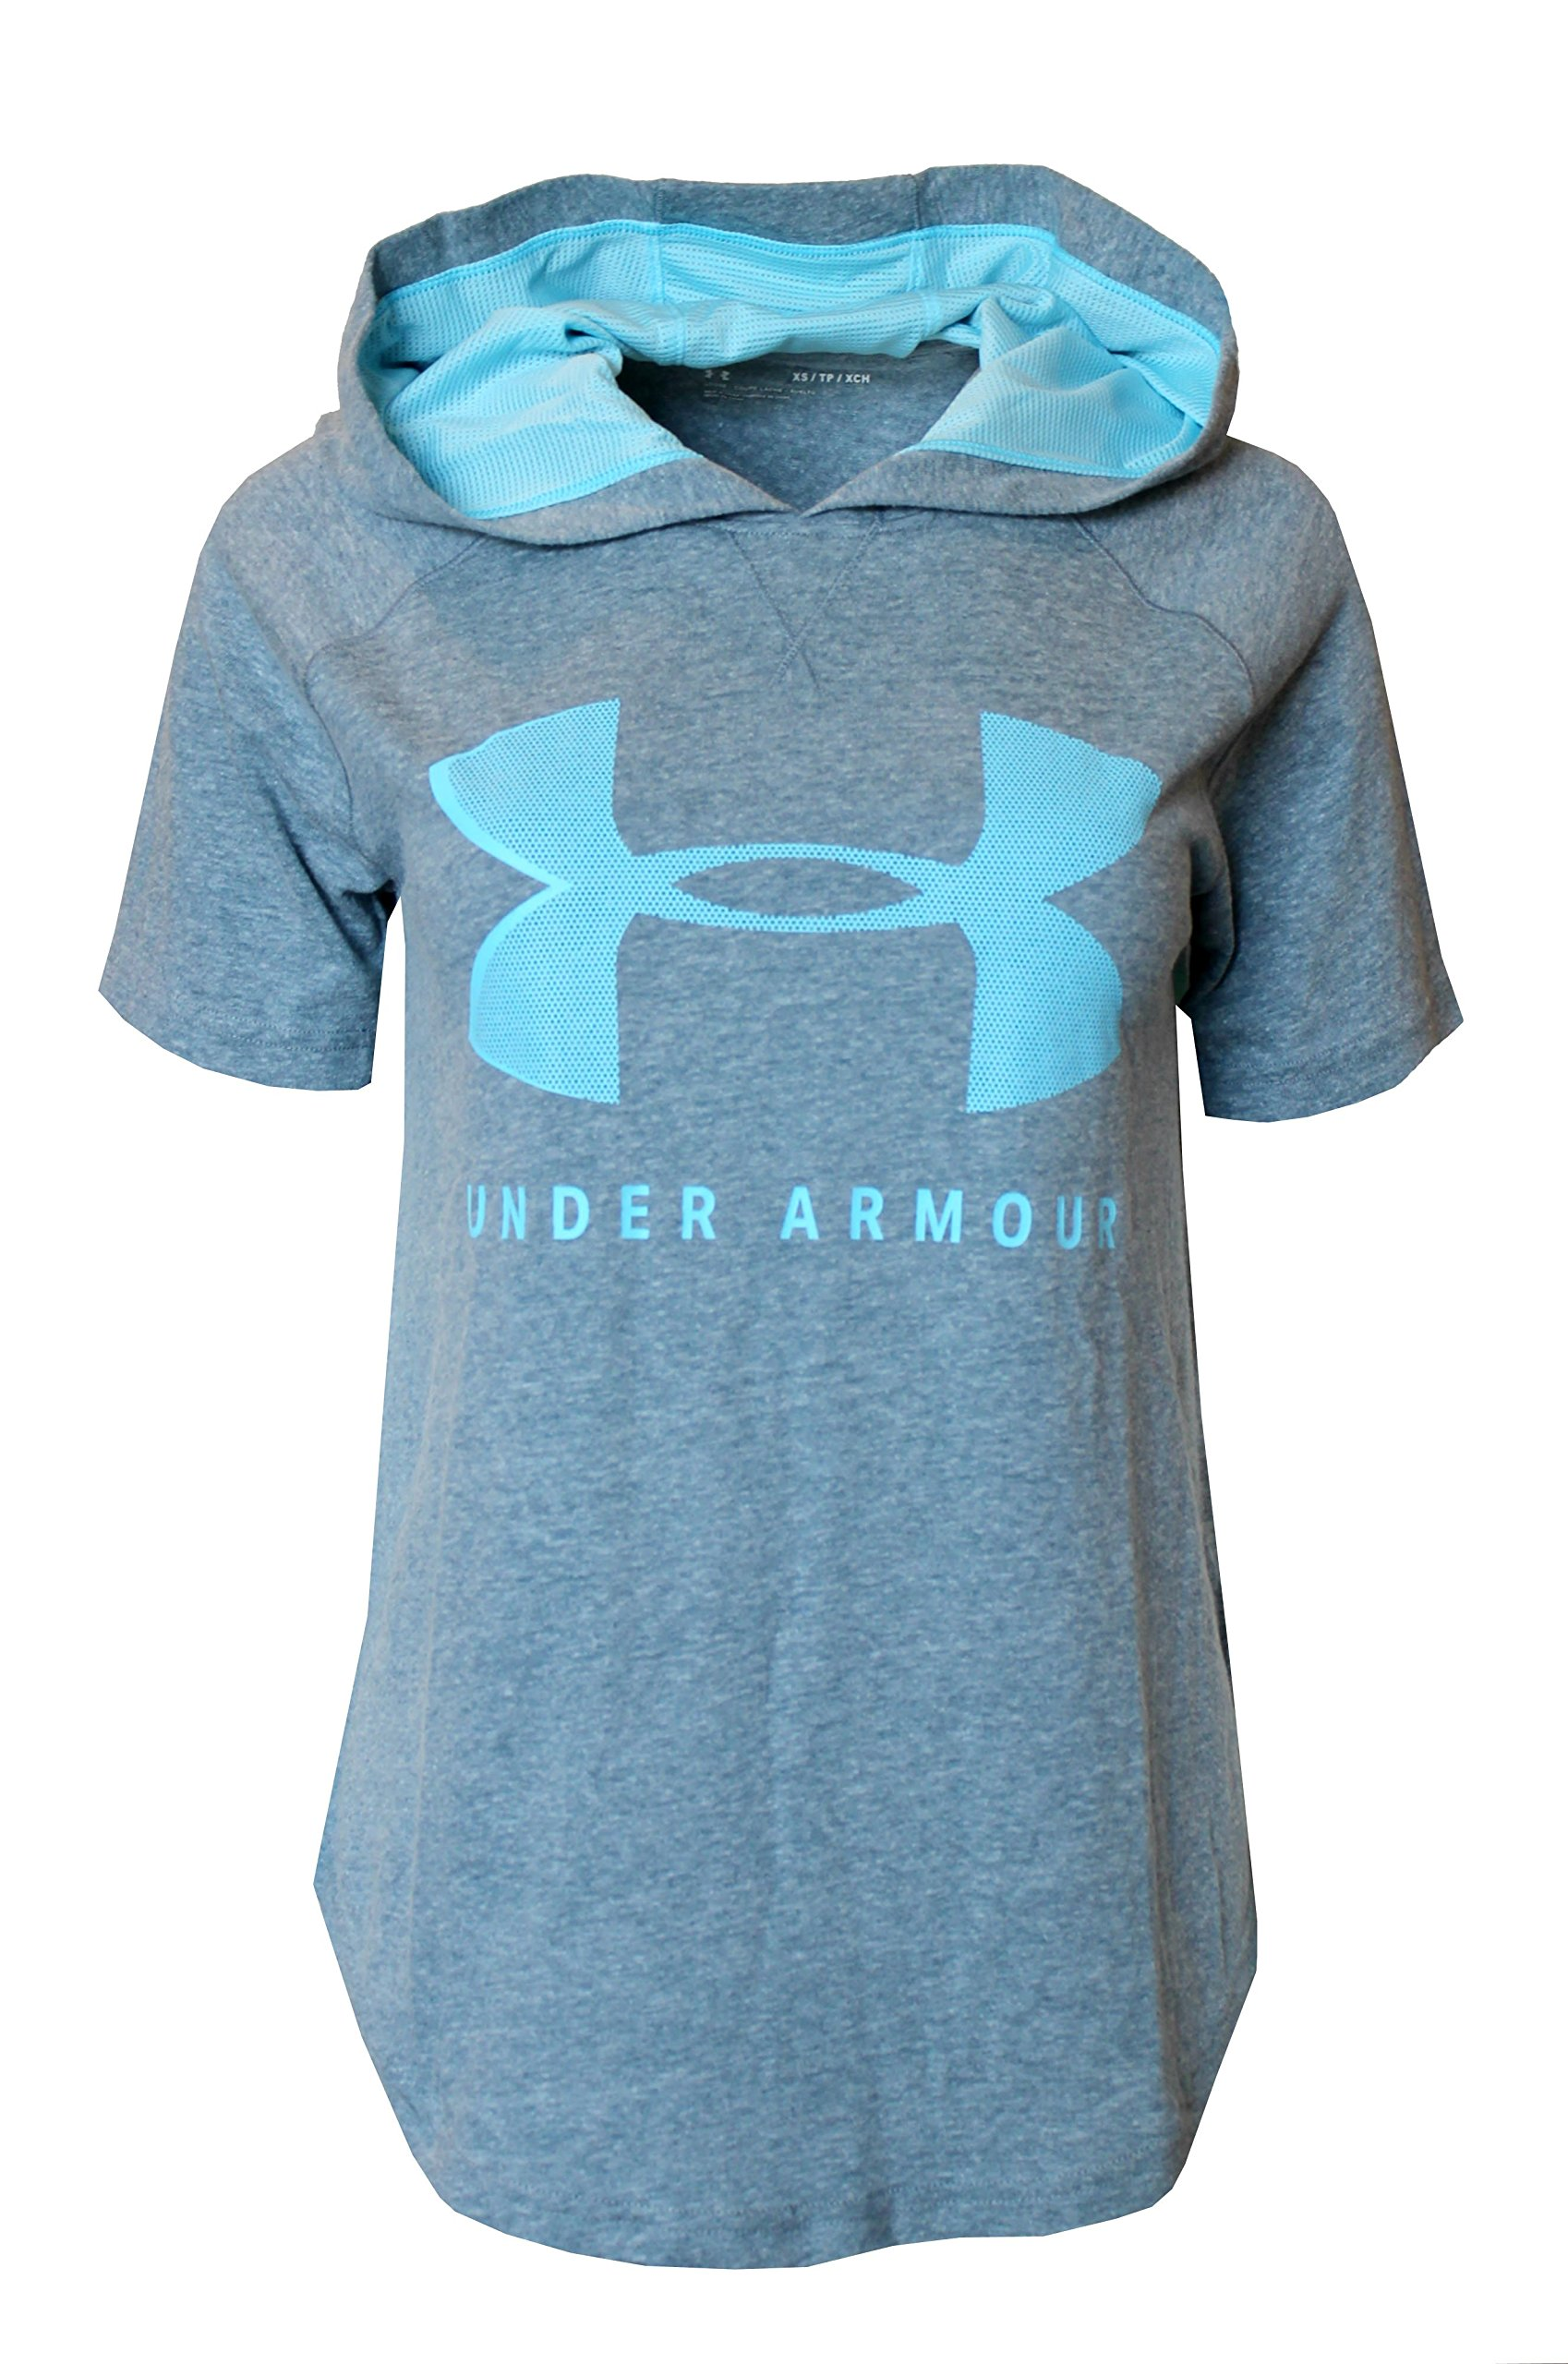 Under Armour Women's Short Sleeve Hooded Shirt Athletic Hoodie (Grey/Blue, M)